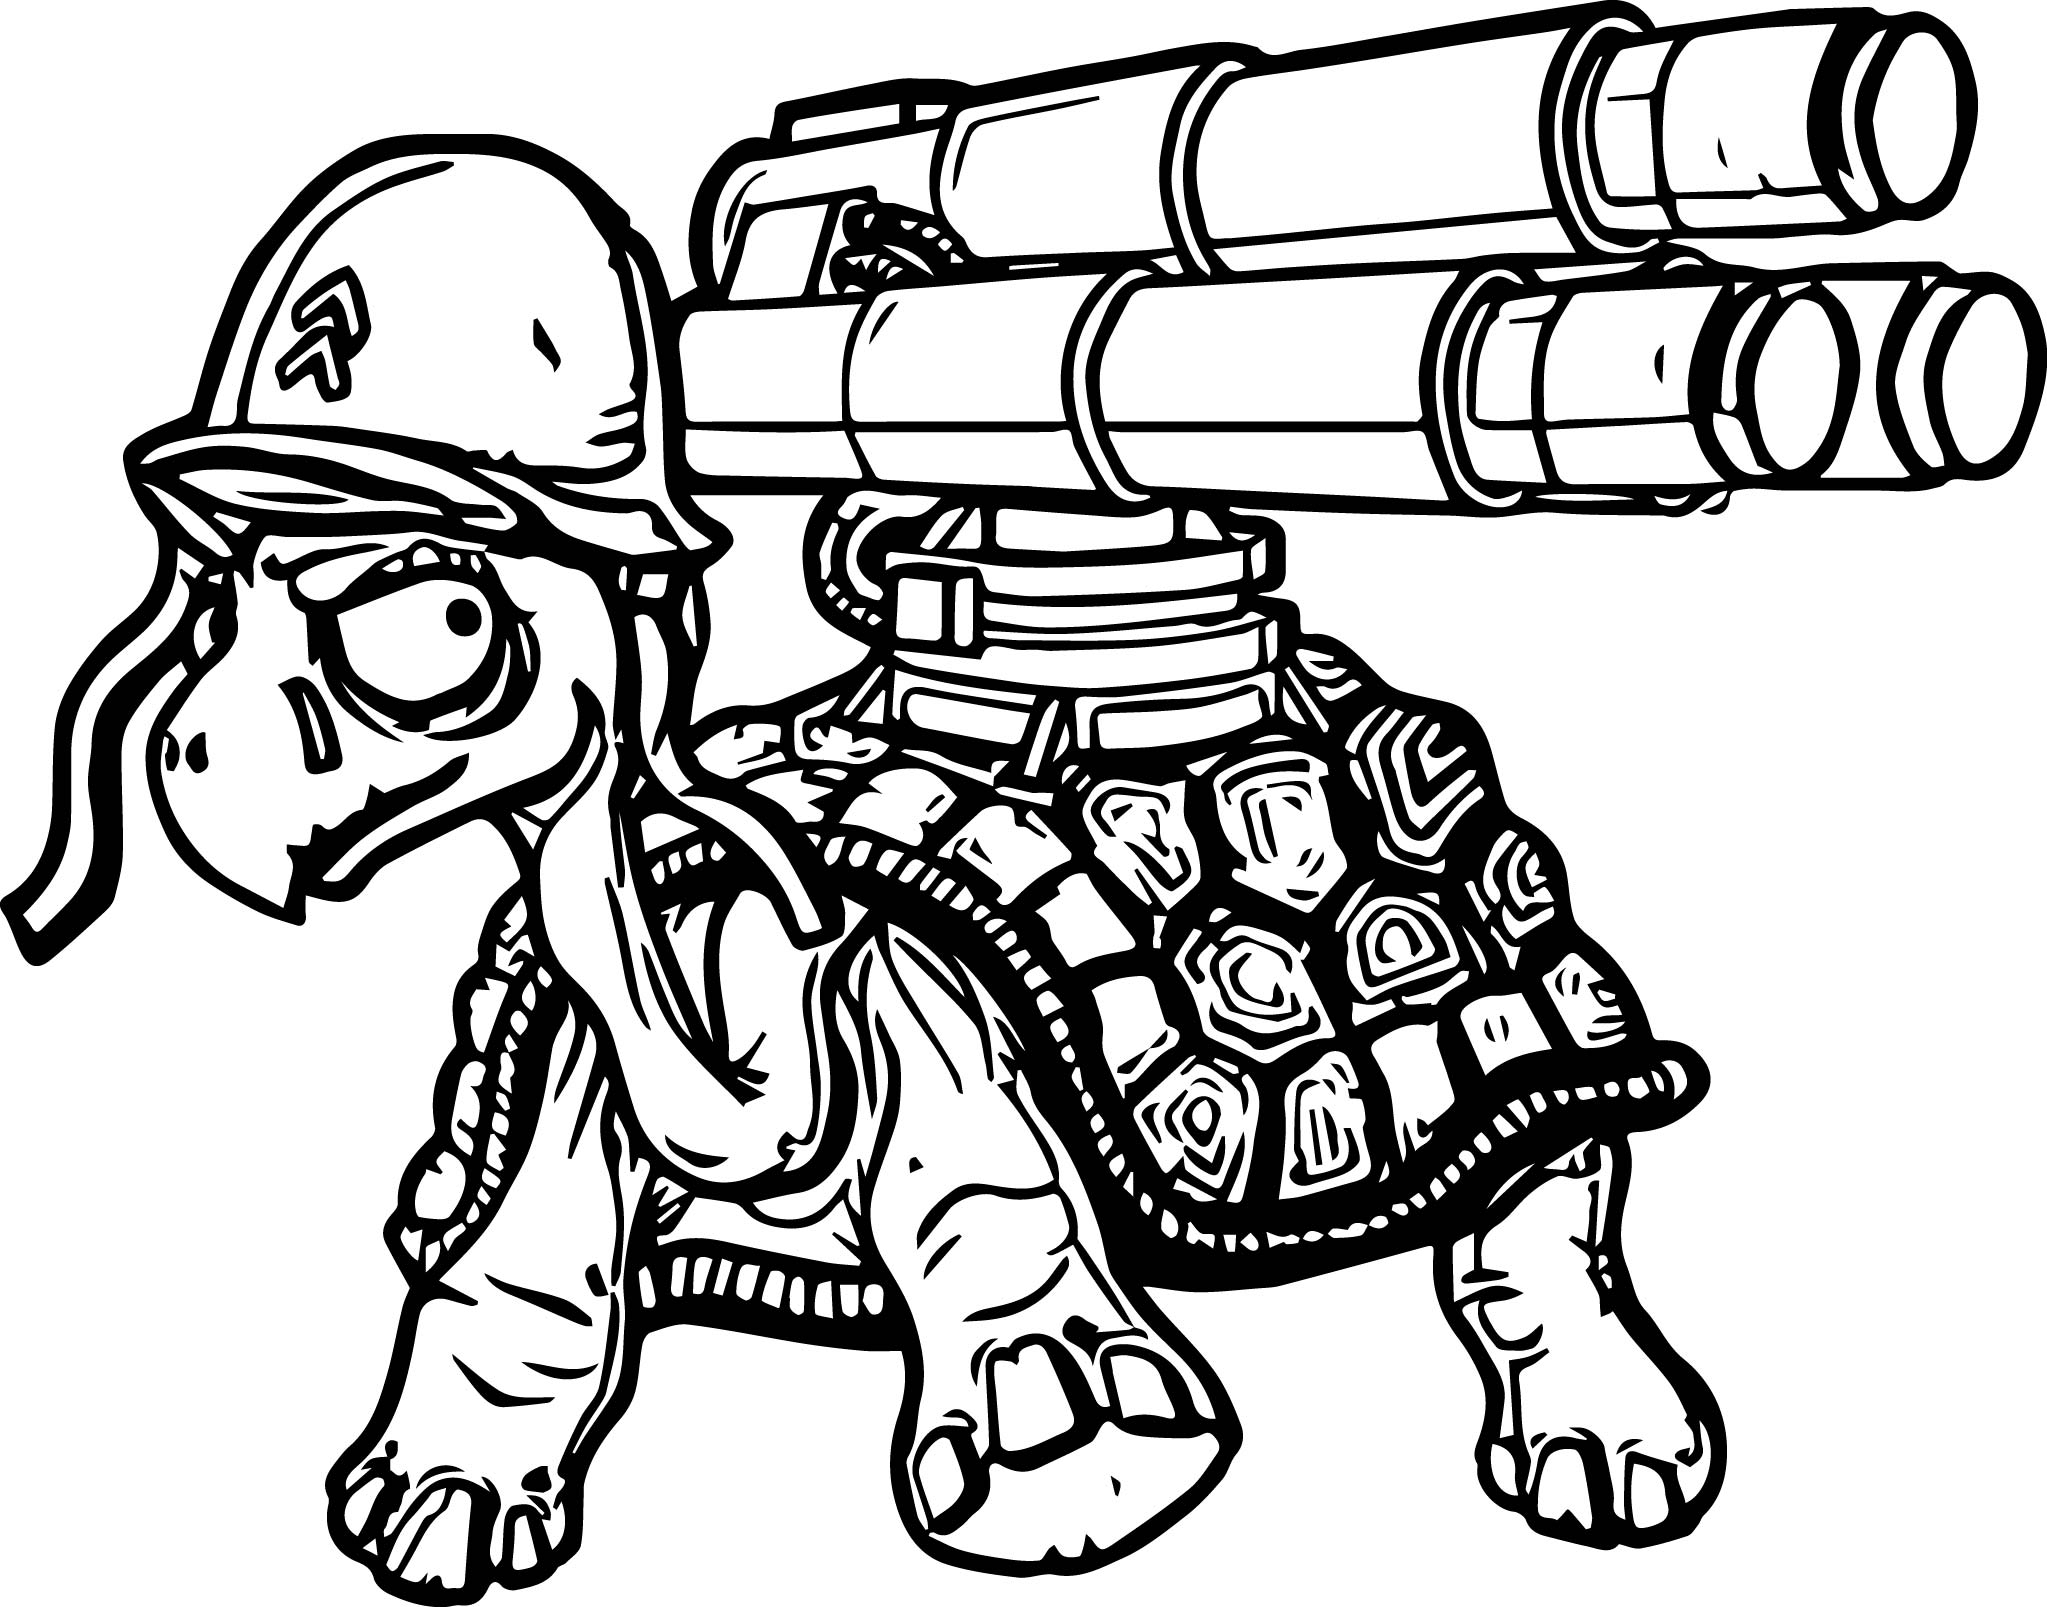 nerf gun coloring pages - danger tortoise turtle gun coloring page